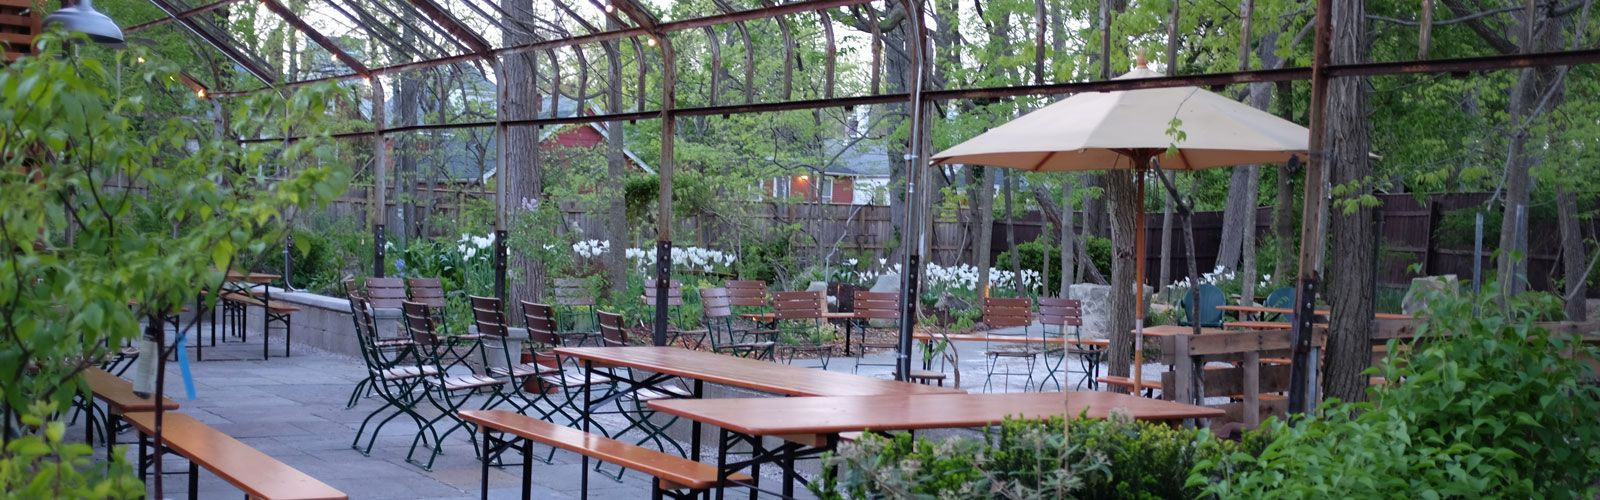 Michler\'s Kentucky Native Cafe, Lexington, KY | Beer garden ...